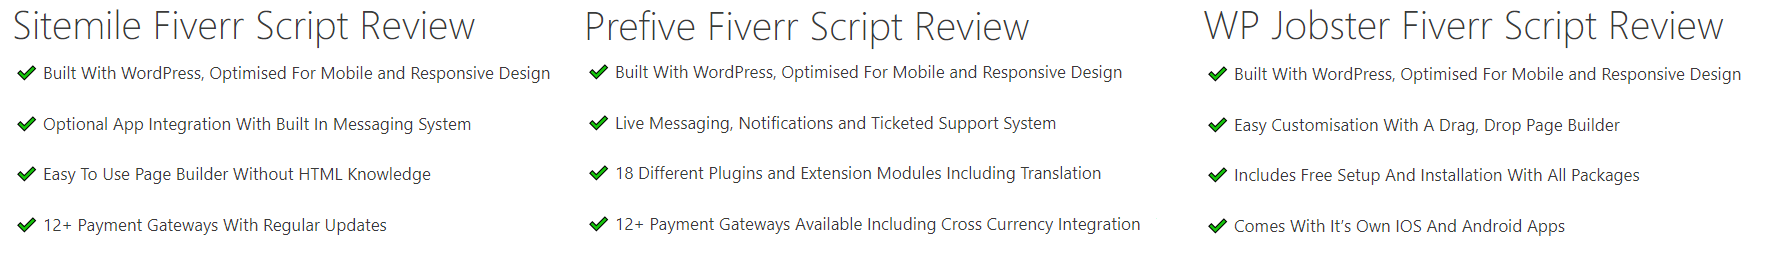 Read All Of Our Fiverr Script Reviews